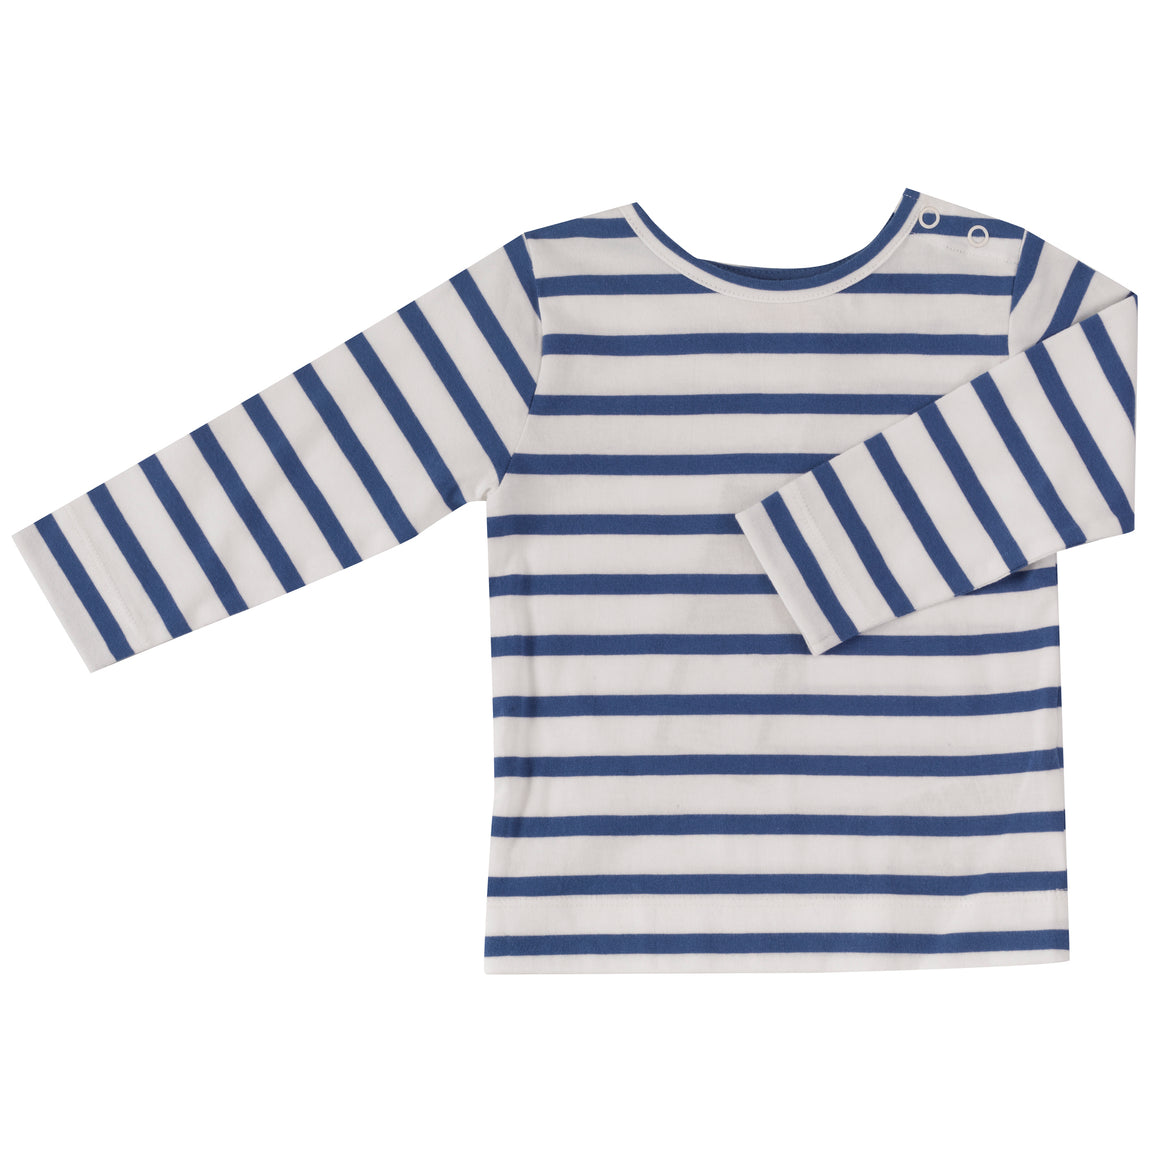 Long Sleeve T-shirt (Breton Stripe) in Delft Blue